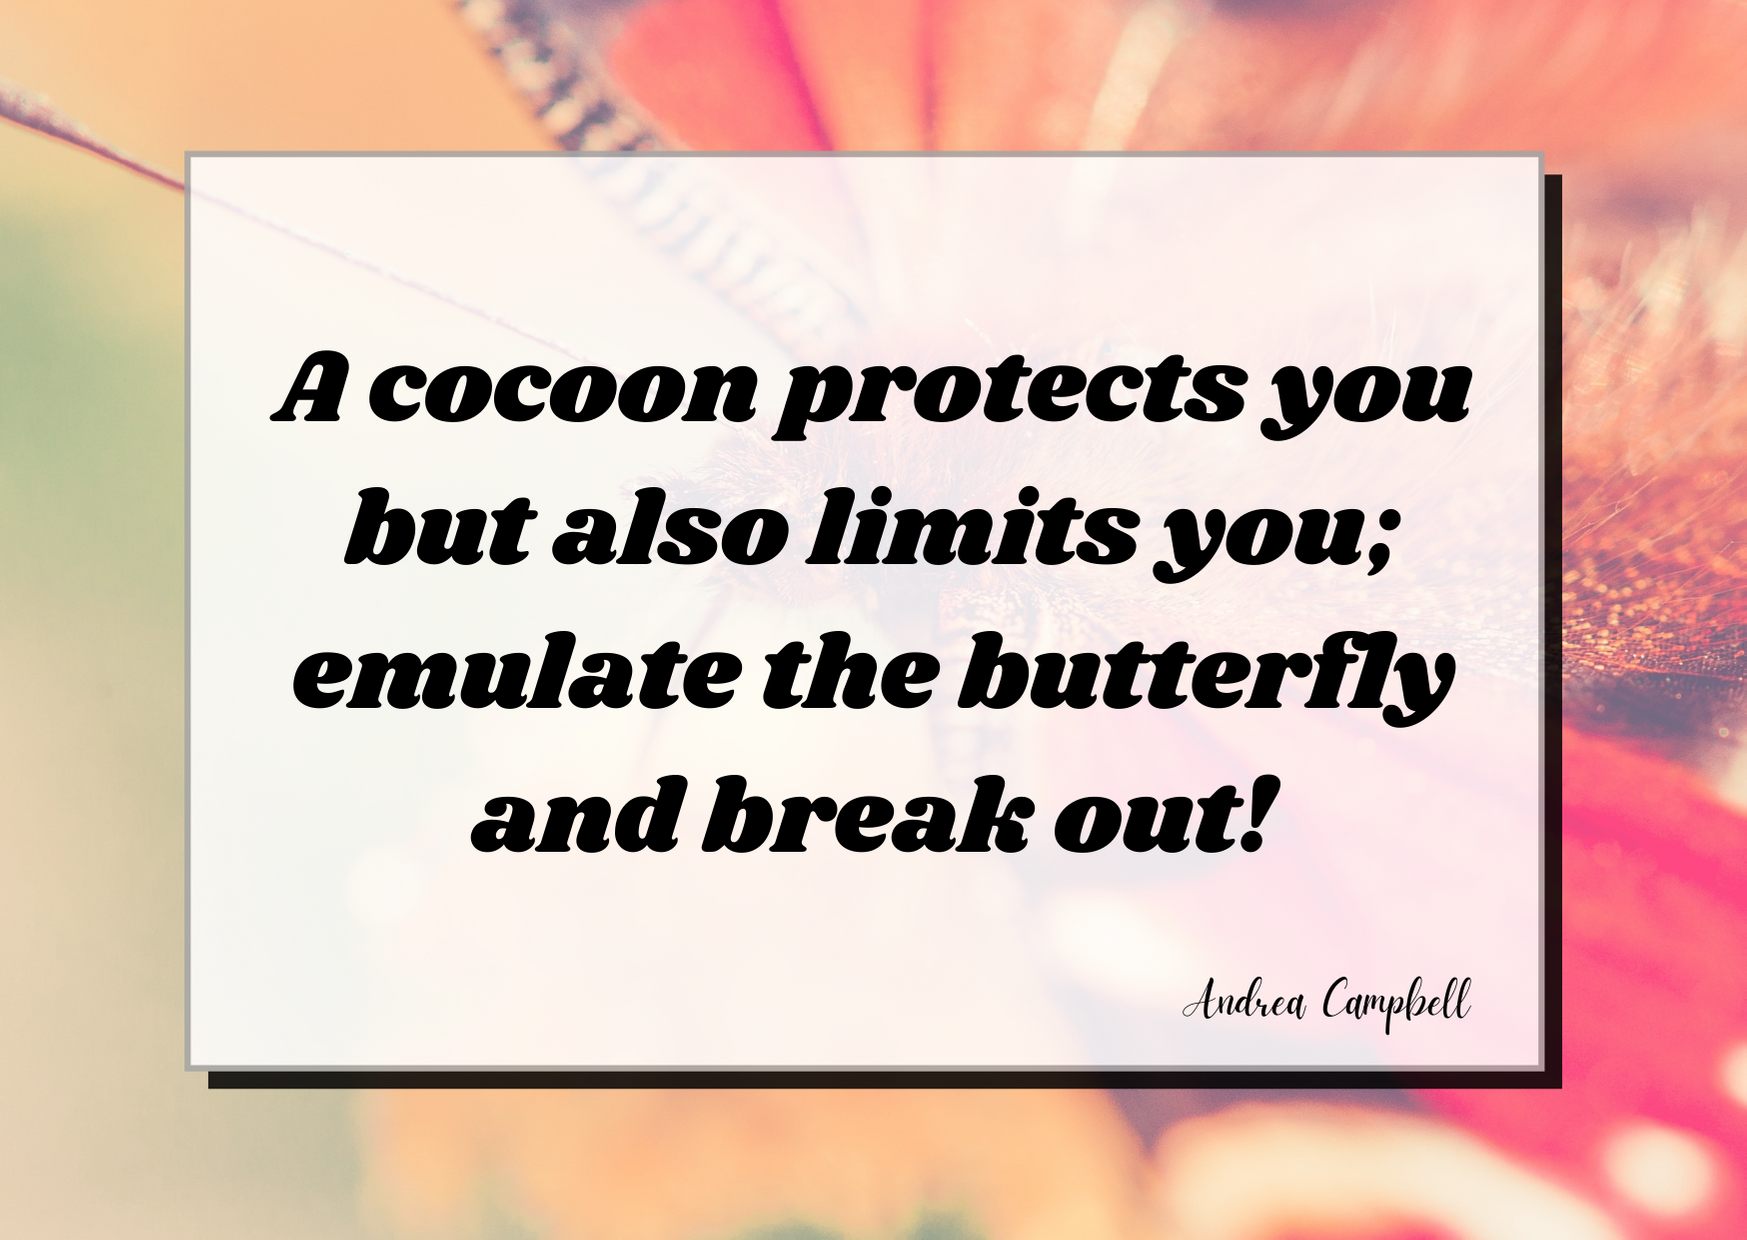 A cocoon protects